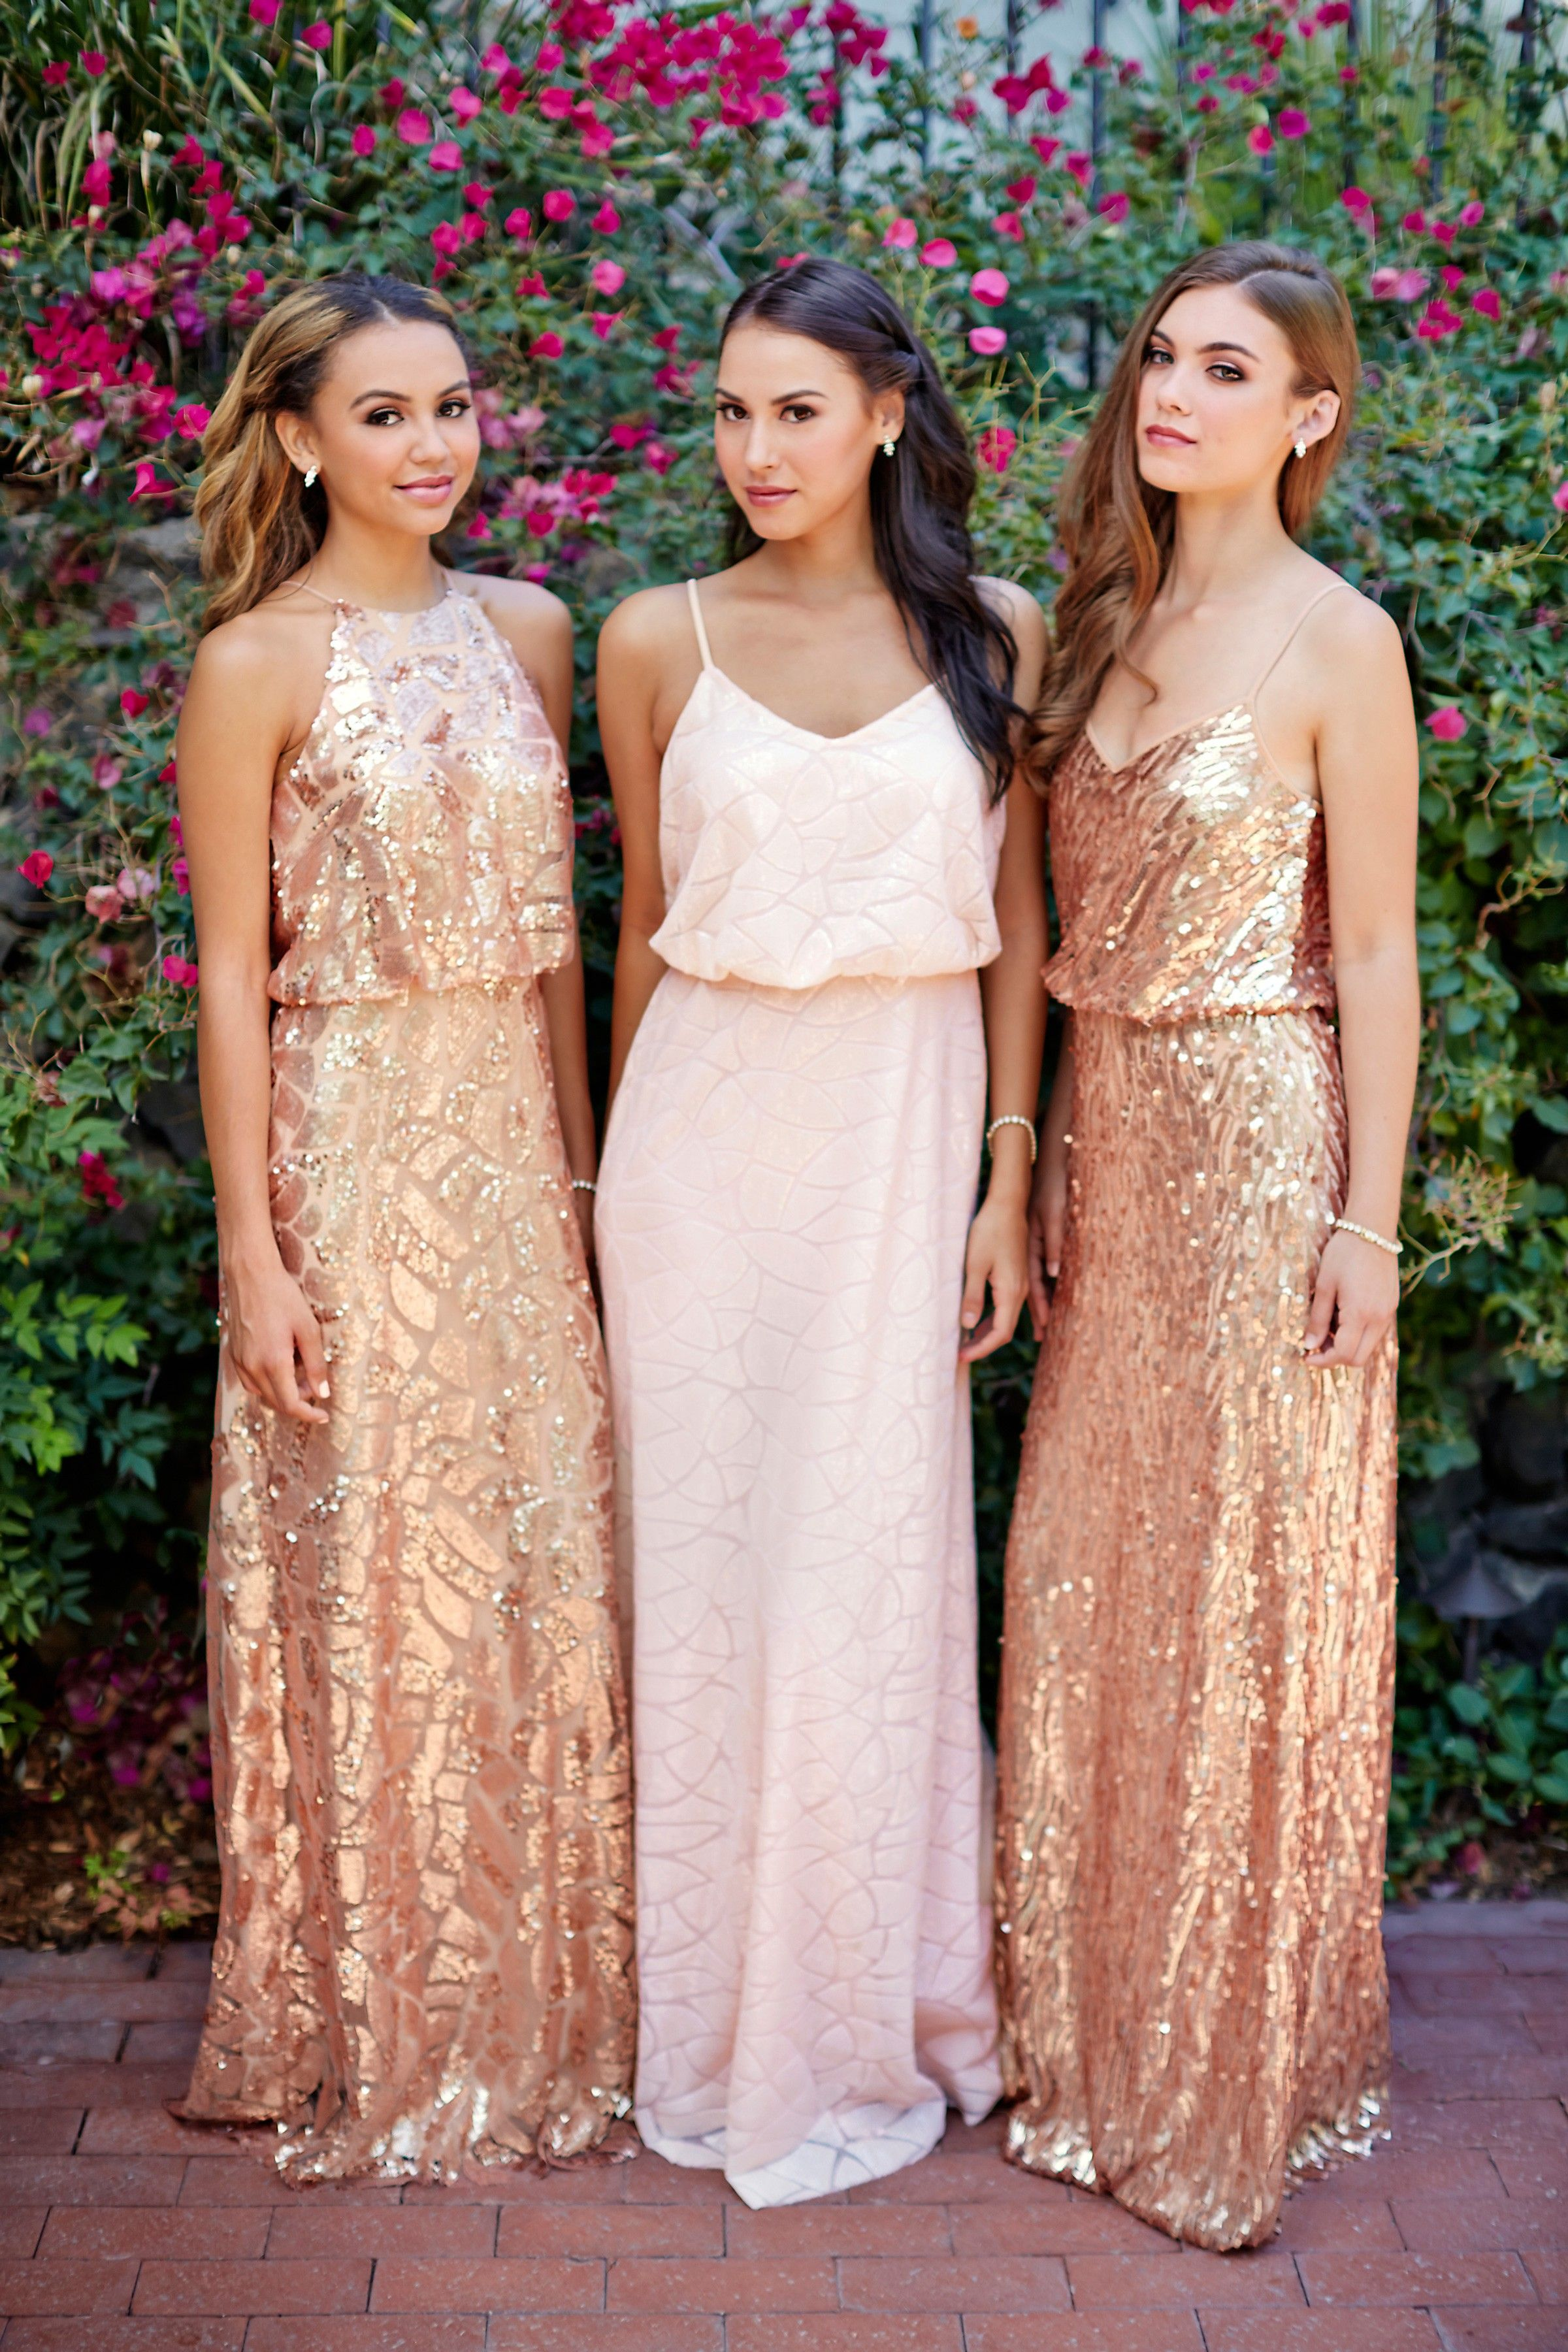 Donna morgan courtney sequin bridesmaid wedding and wedding goals a floor length sequin bridesmaid dress with a strappy top available in two colors ombrellifo Gallery